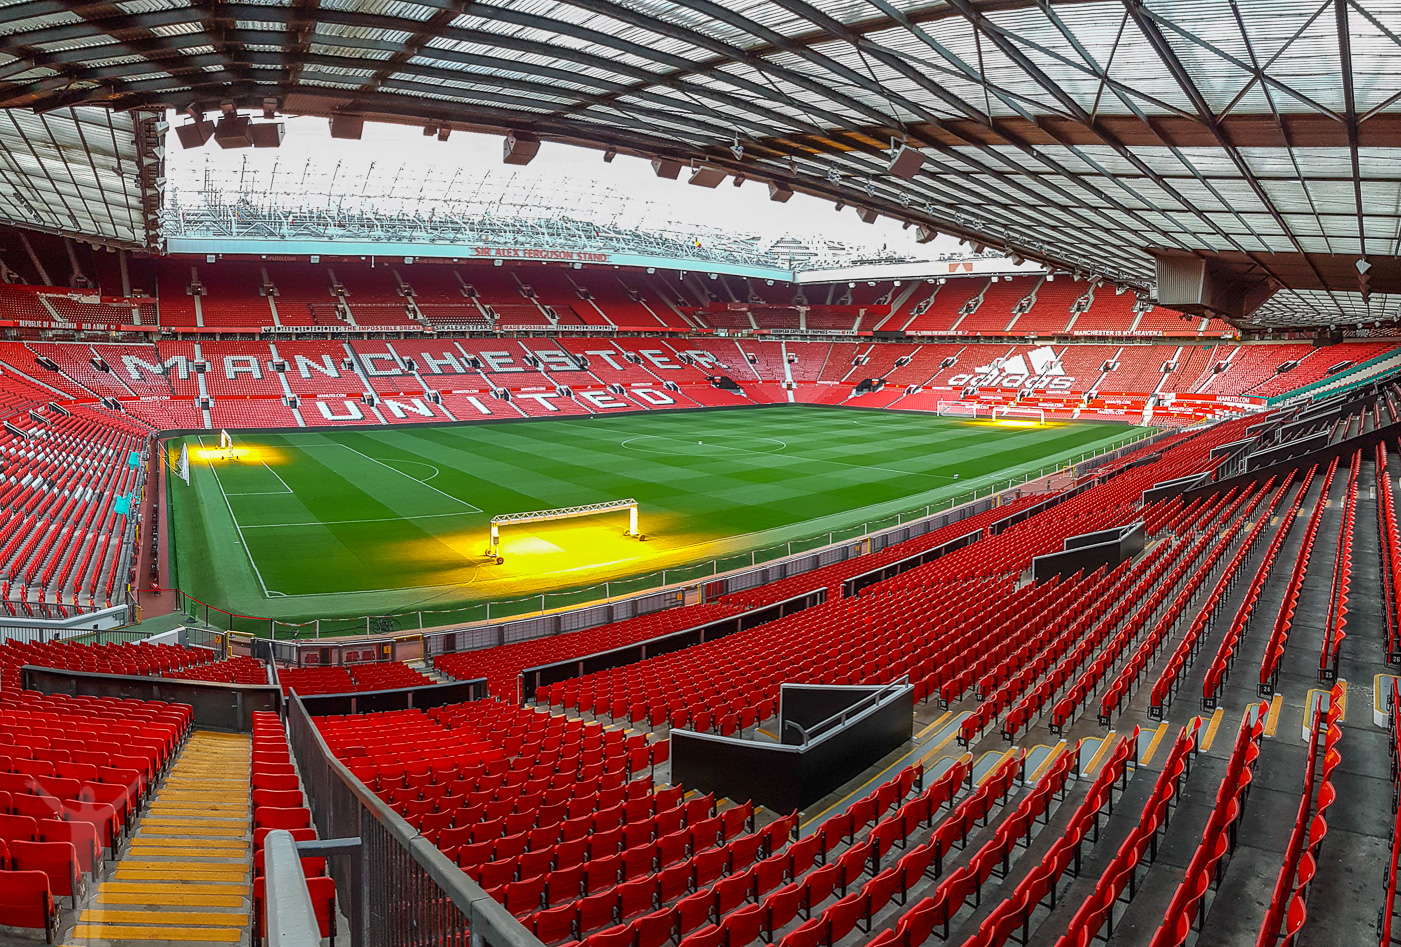 Panorama över Old Trafford, Manchester